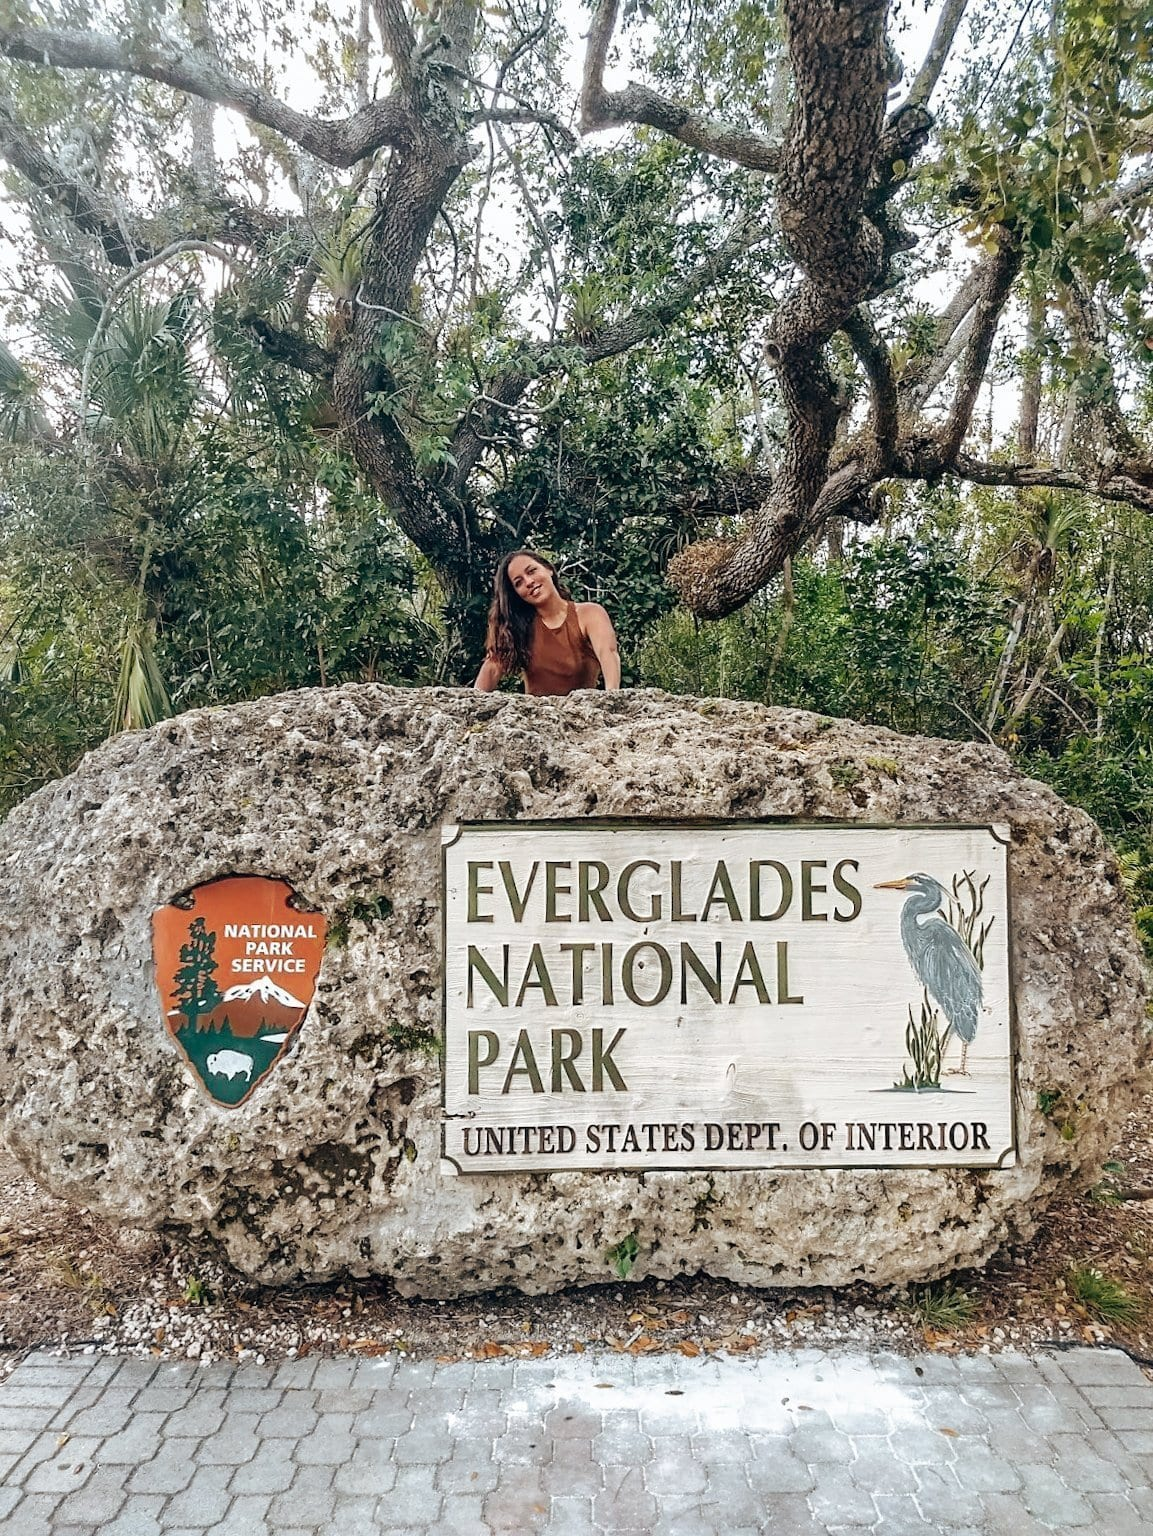 Exploring the real wild side of Miami: The Everglades